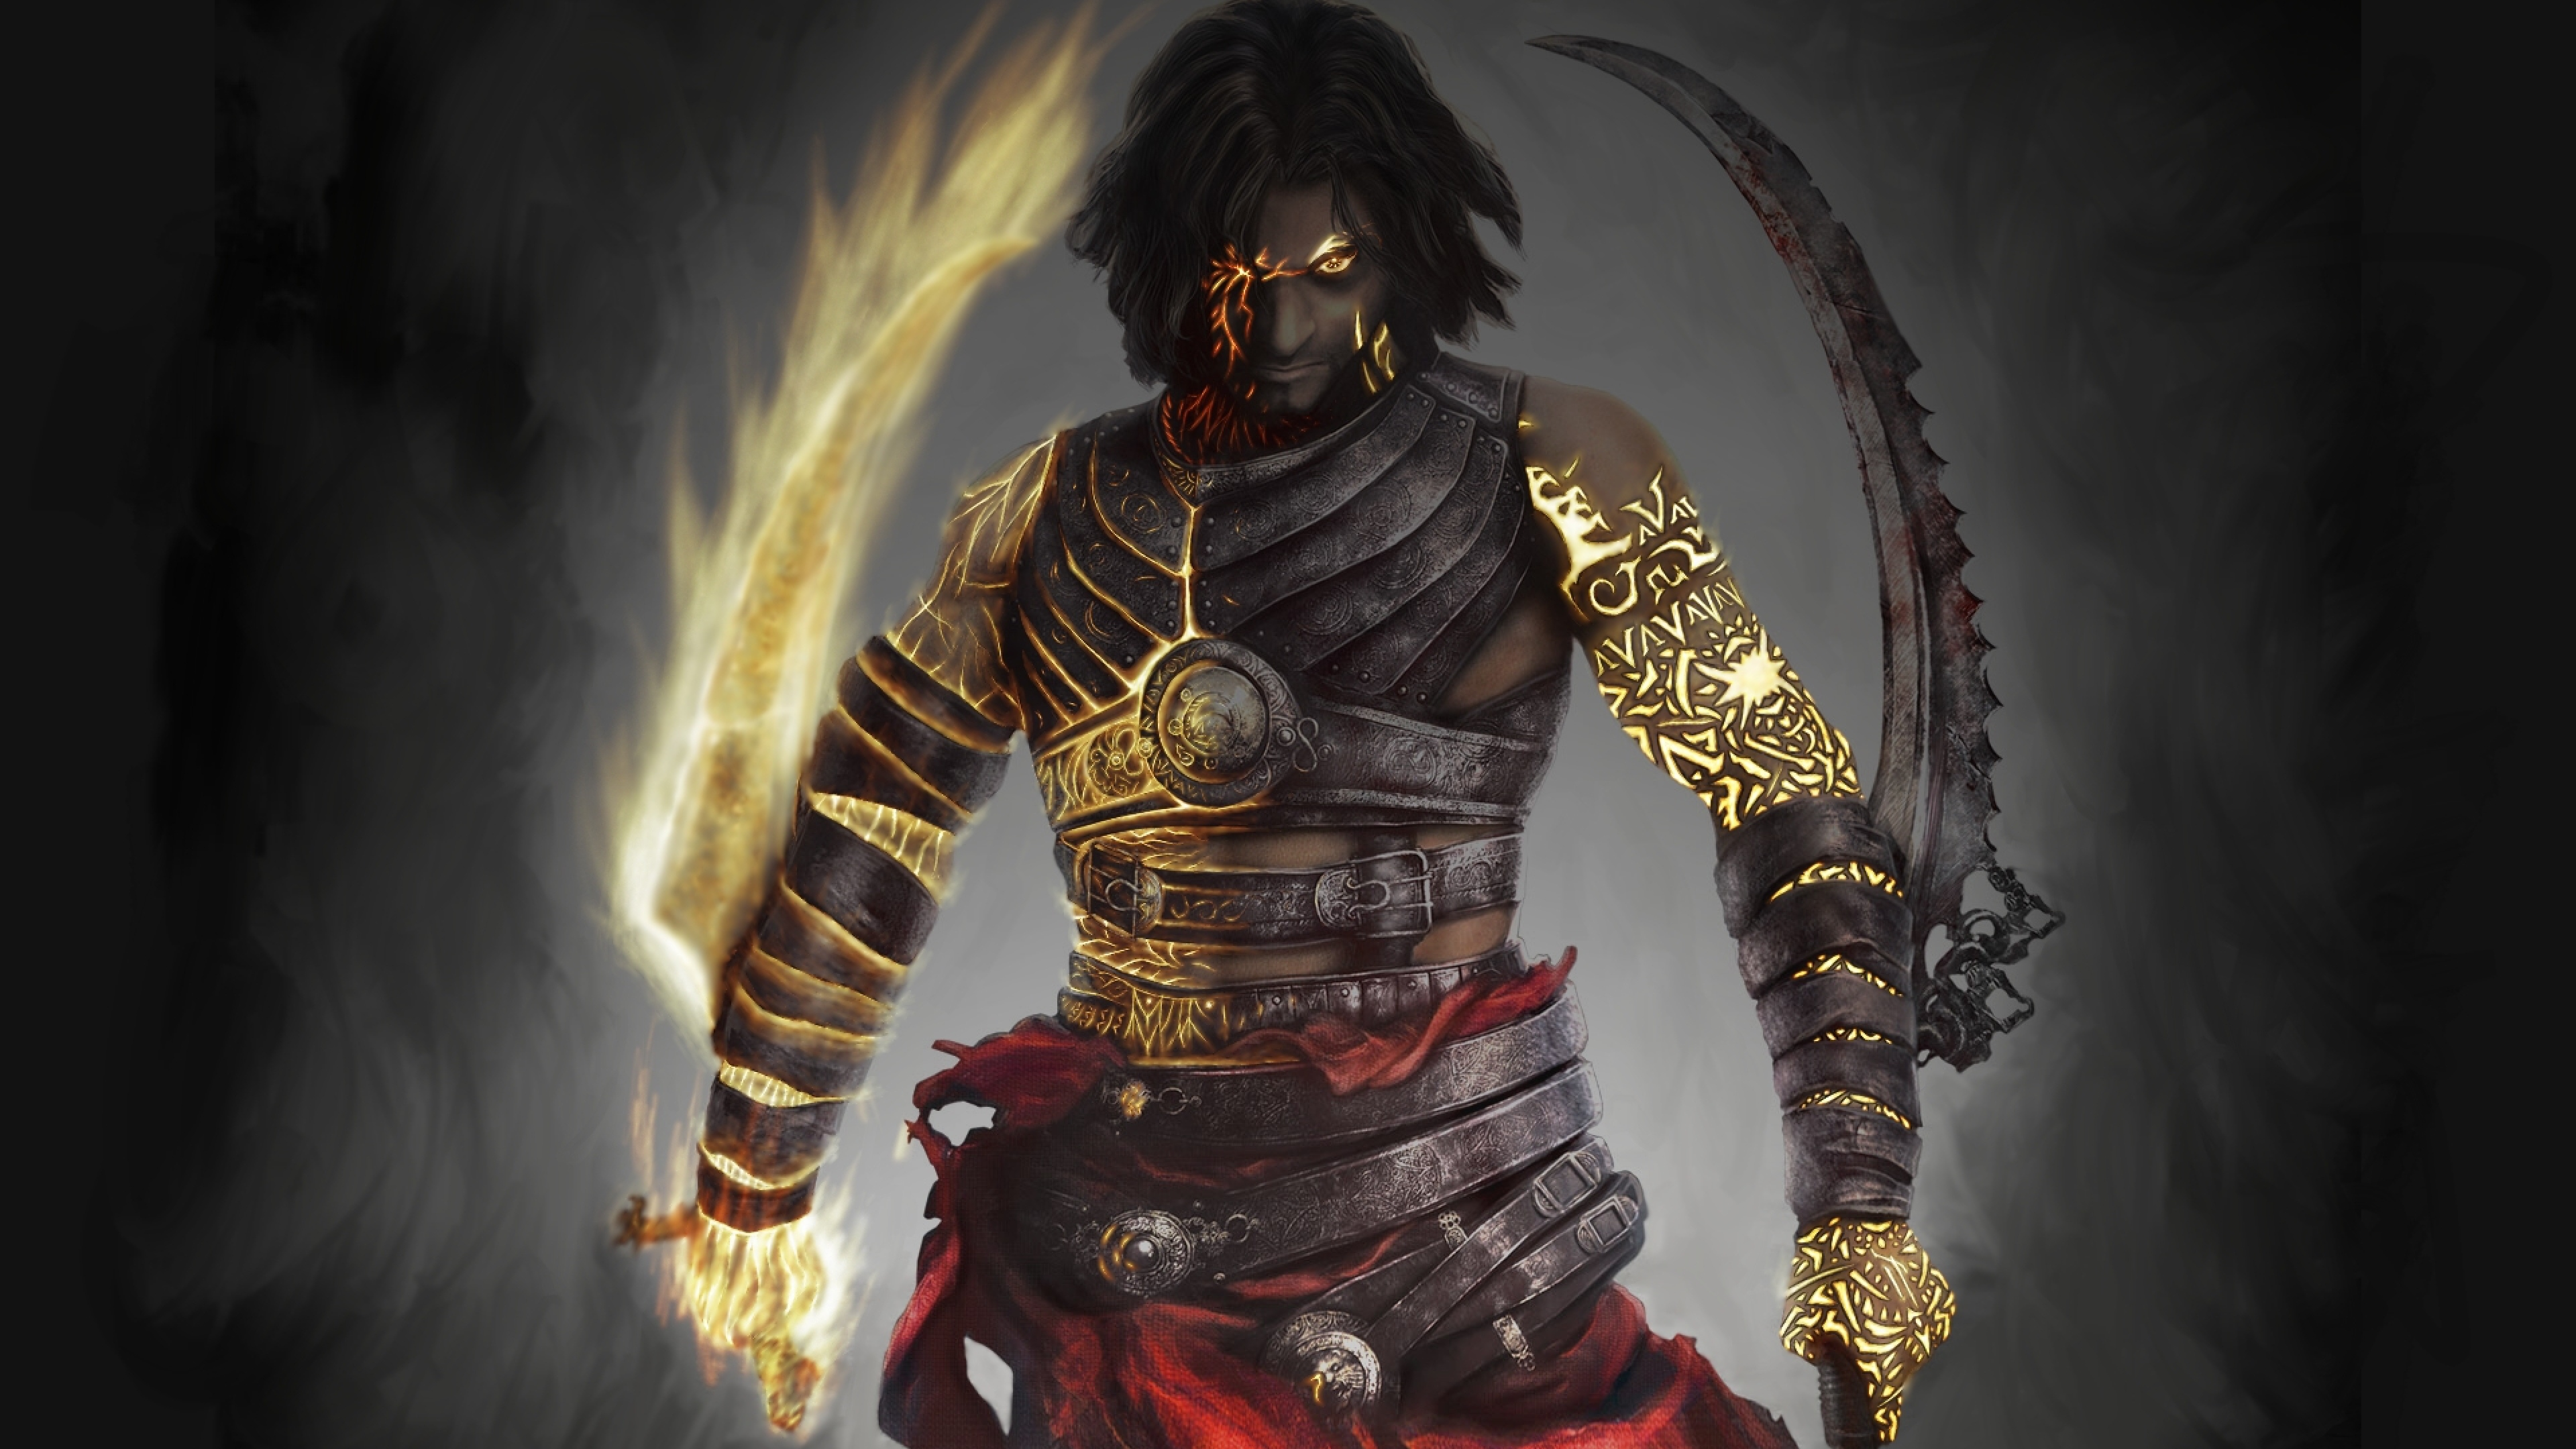 prince_of_persia_warrior_within_art_game_97815_3840x2160.jpg